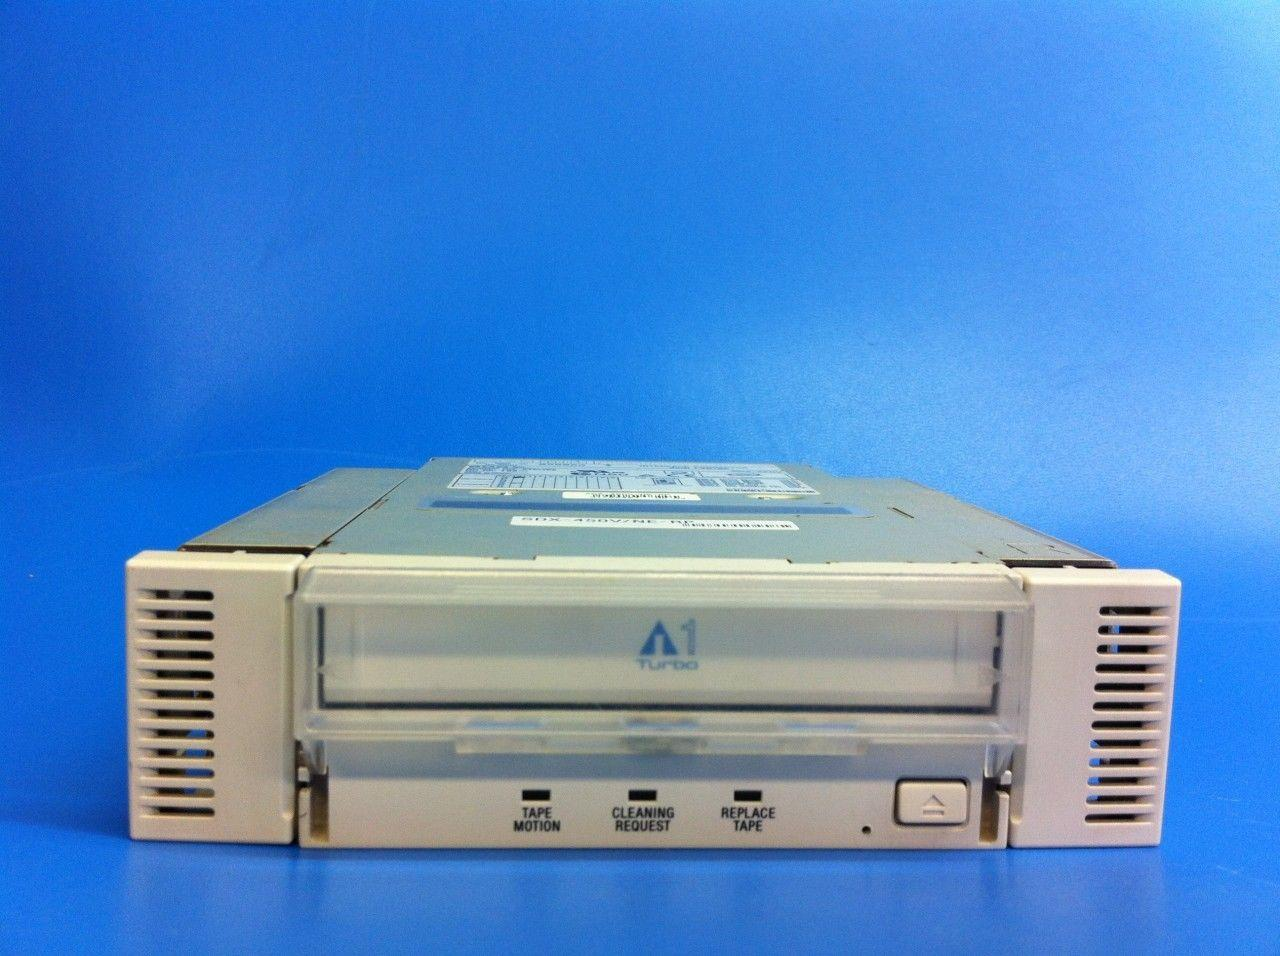 SDX-450V Sony AIT-1 Turbo 40/140GB LVD SCSI Internal (White Bezel)